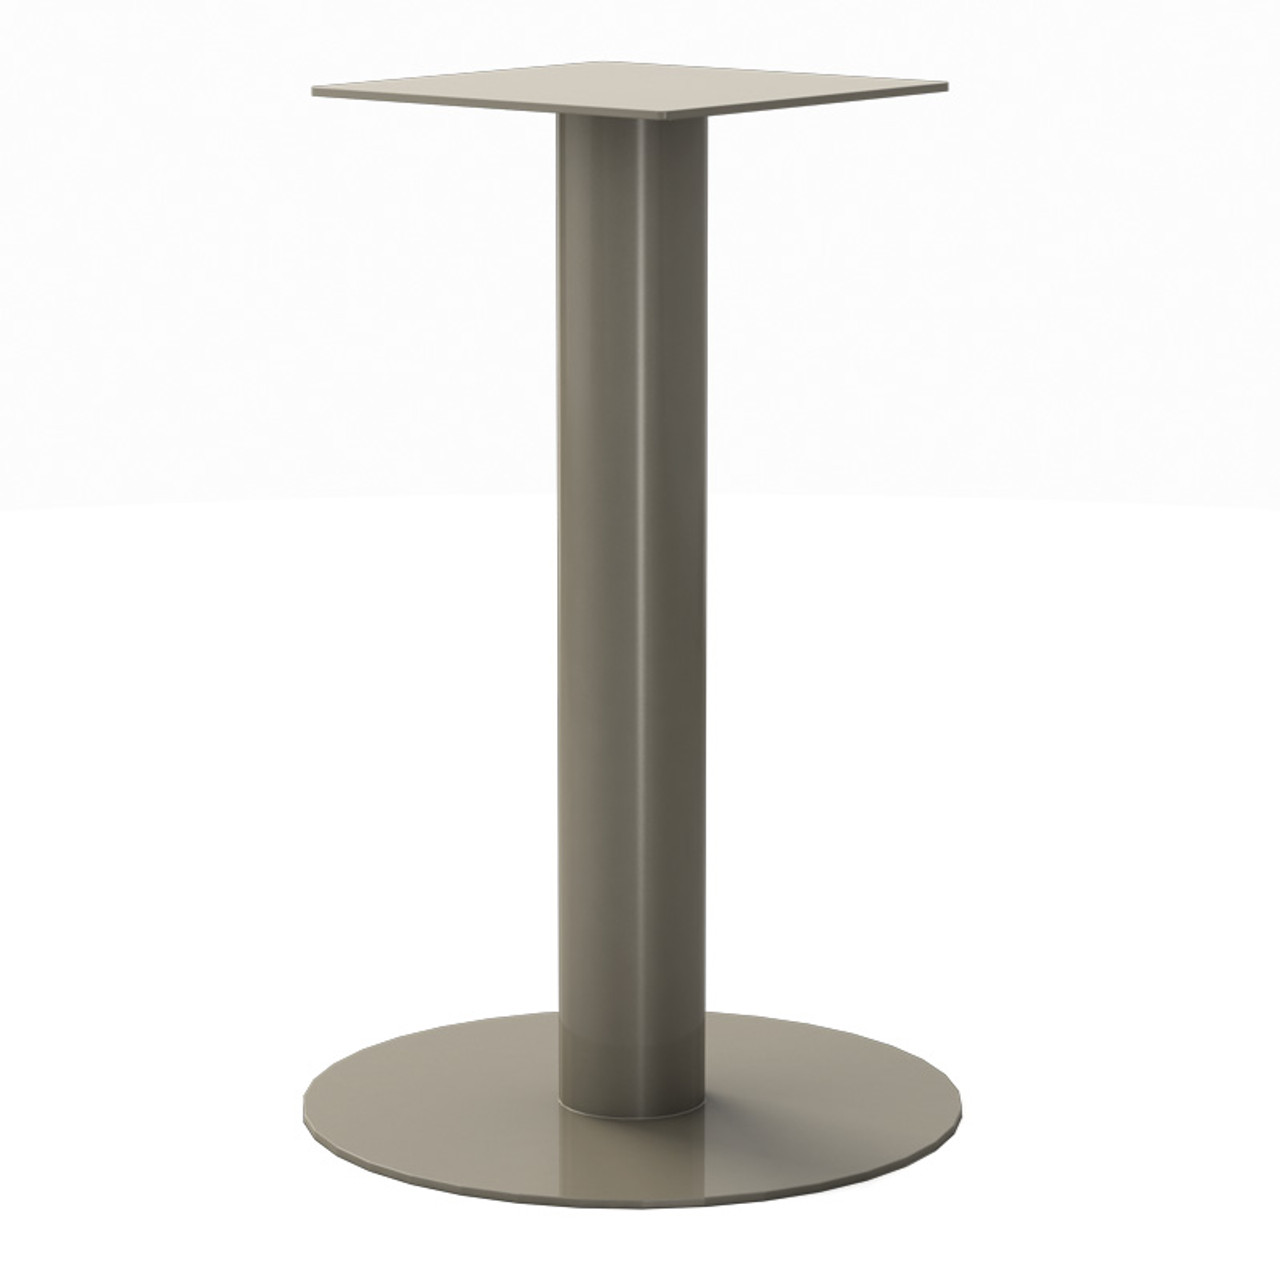 """Round Pedestal Base, 27-3/4"""" Height, 23-3/4"""" Base Diameter, 4"""" diameter Column, with welded mounting plate - Replacementtablelegs.com"""